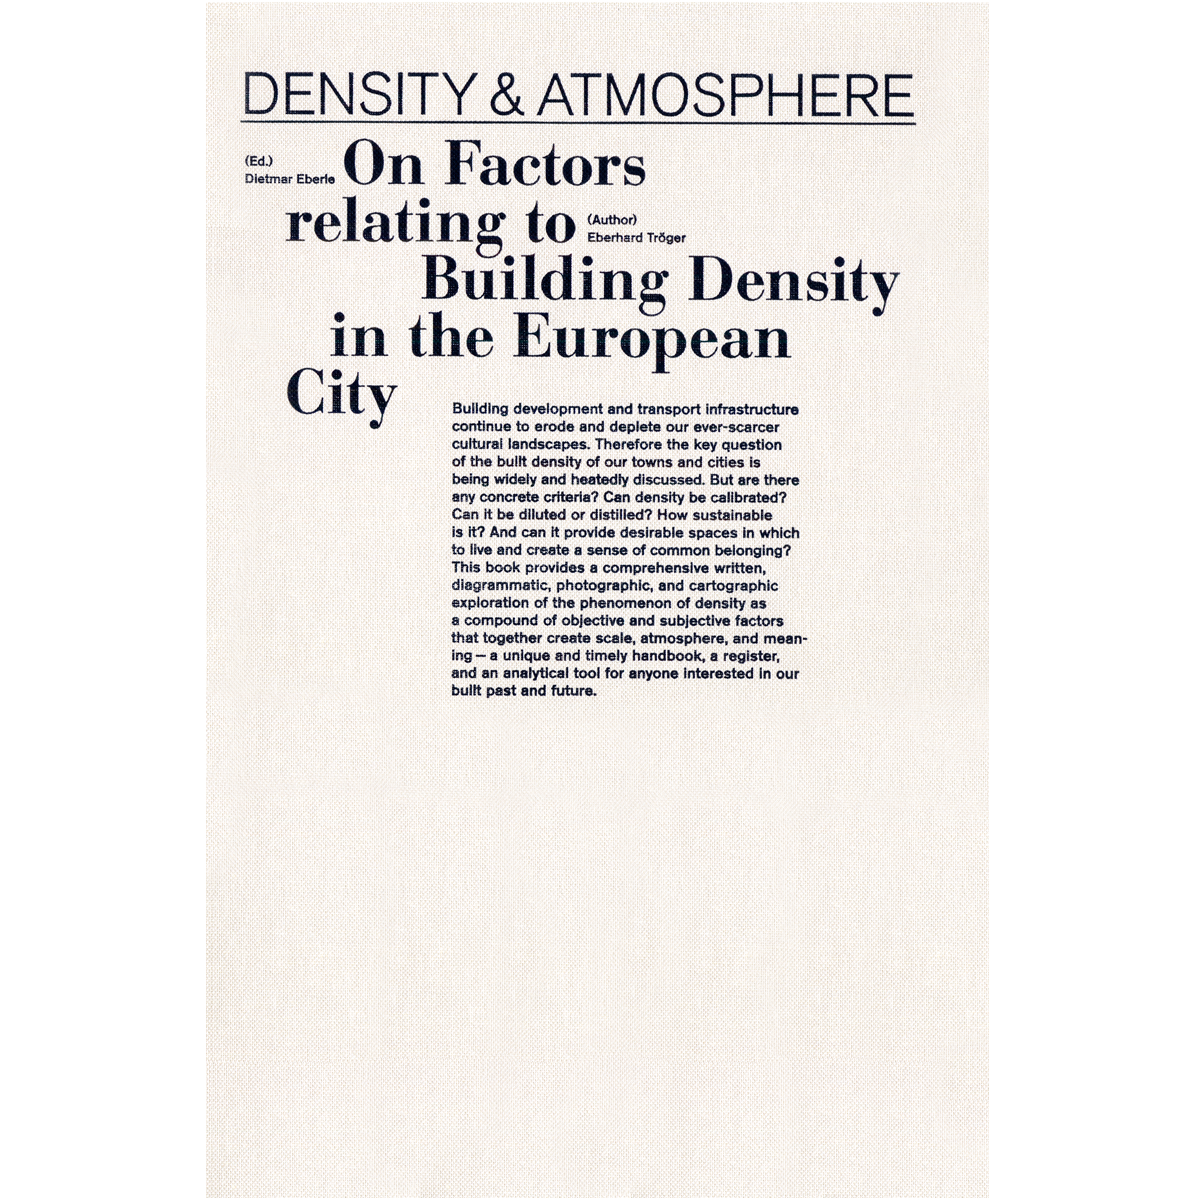 Density & Atmosphere.  On Factors relating to Building Density in the European City